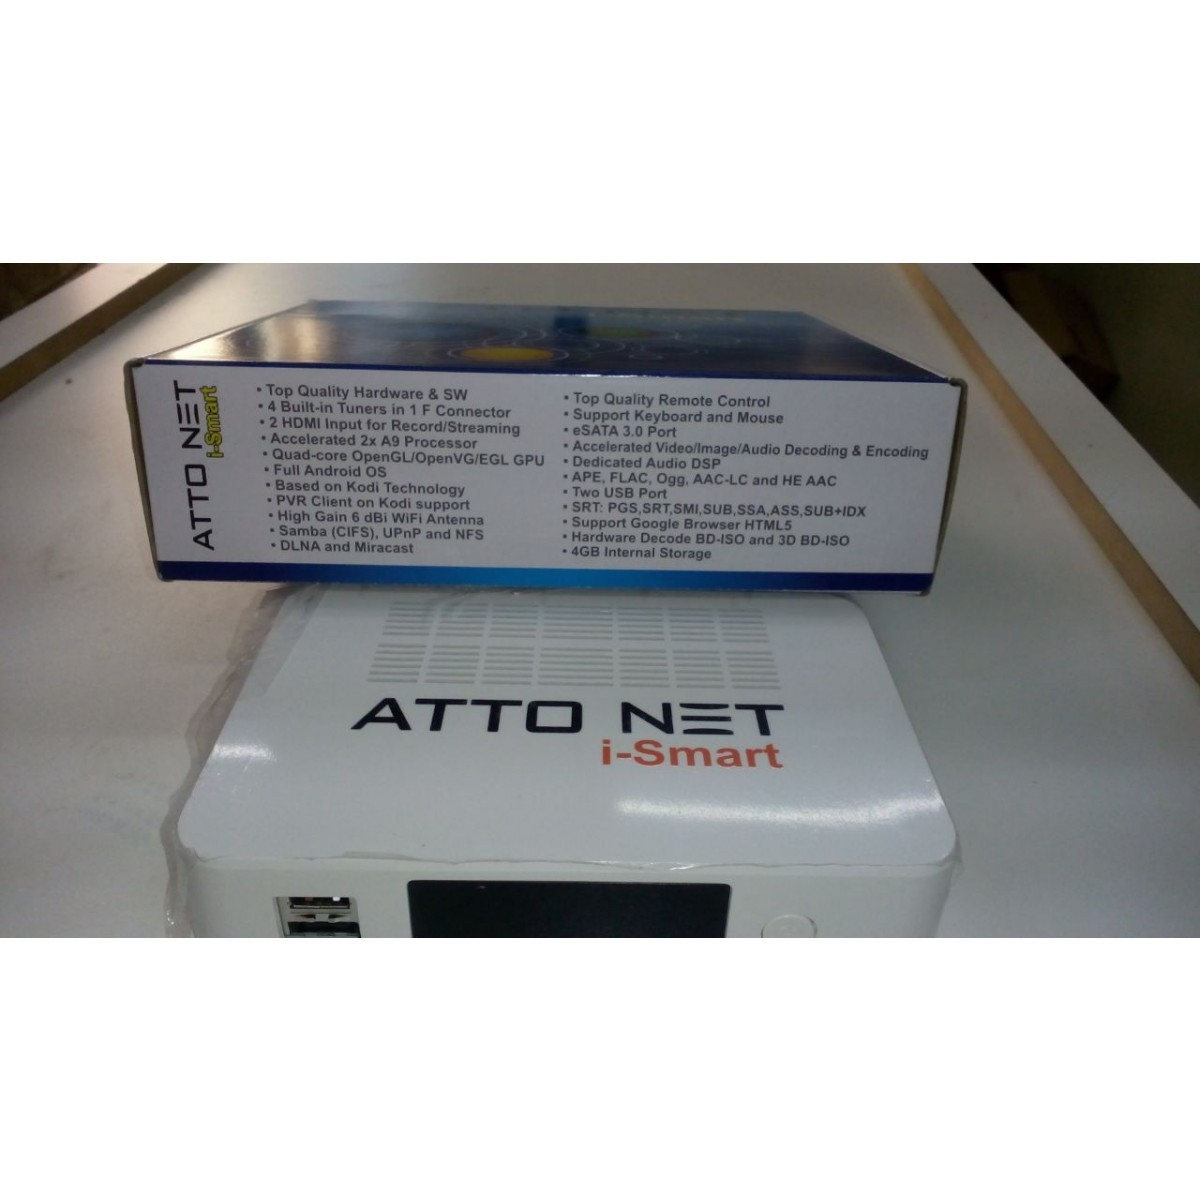 Receptor Atto Net I-Smart HD - Android